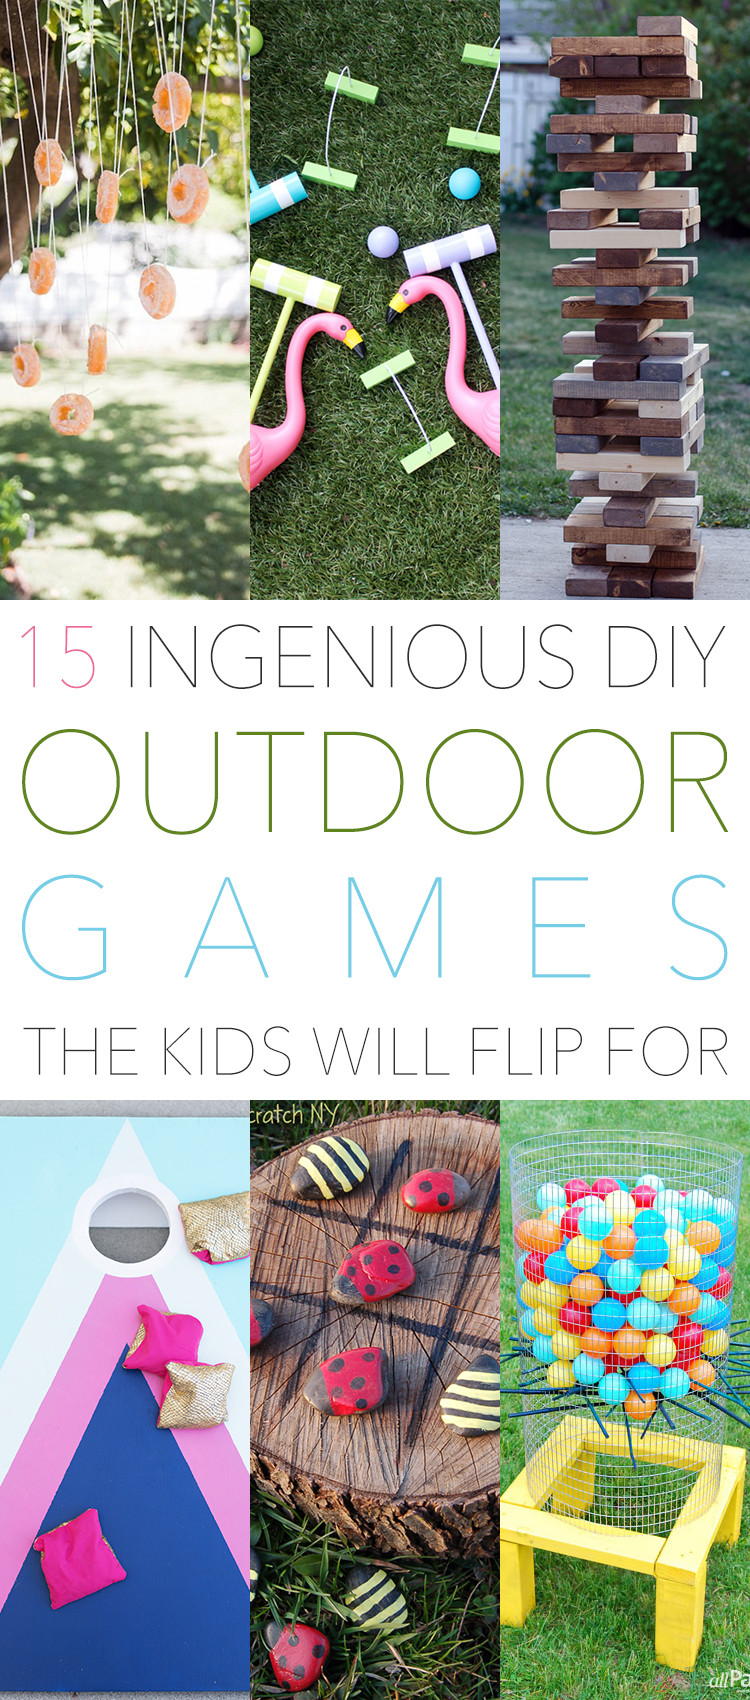 Best ideas about DIY Outdoor Games . Save or Pin 15 Ingenious DIY Outdoor Games The Kids Will Flip For Now.